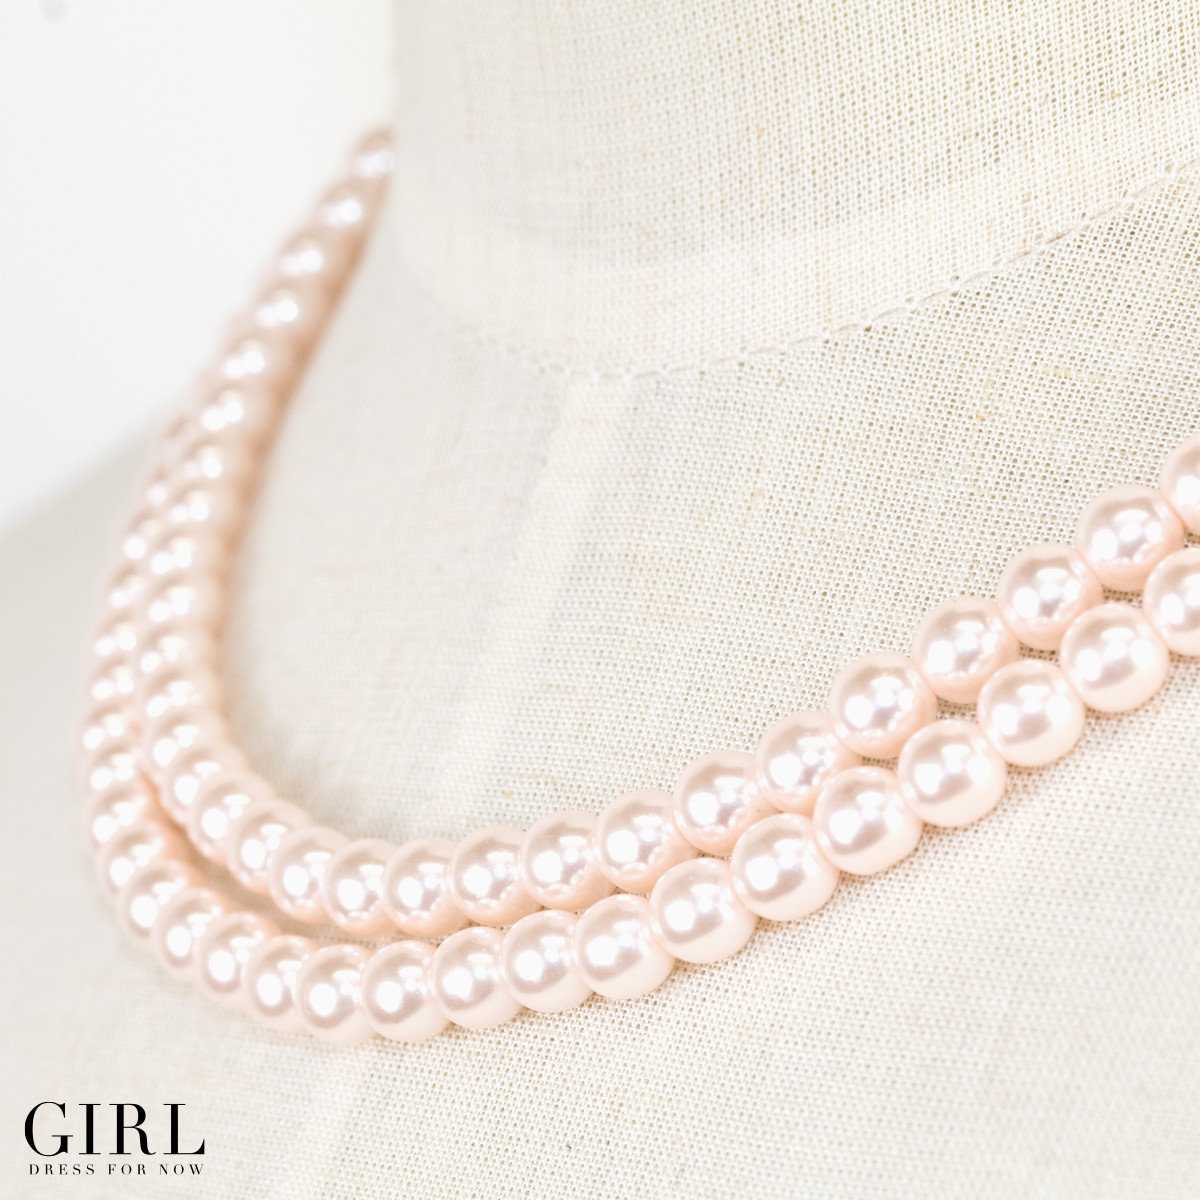 Atmosphere Pearl girl in cute little 2-Pearl necklace an elegant wish for you necklace Pearl party party party formal parties 3 ladies store